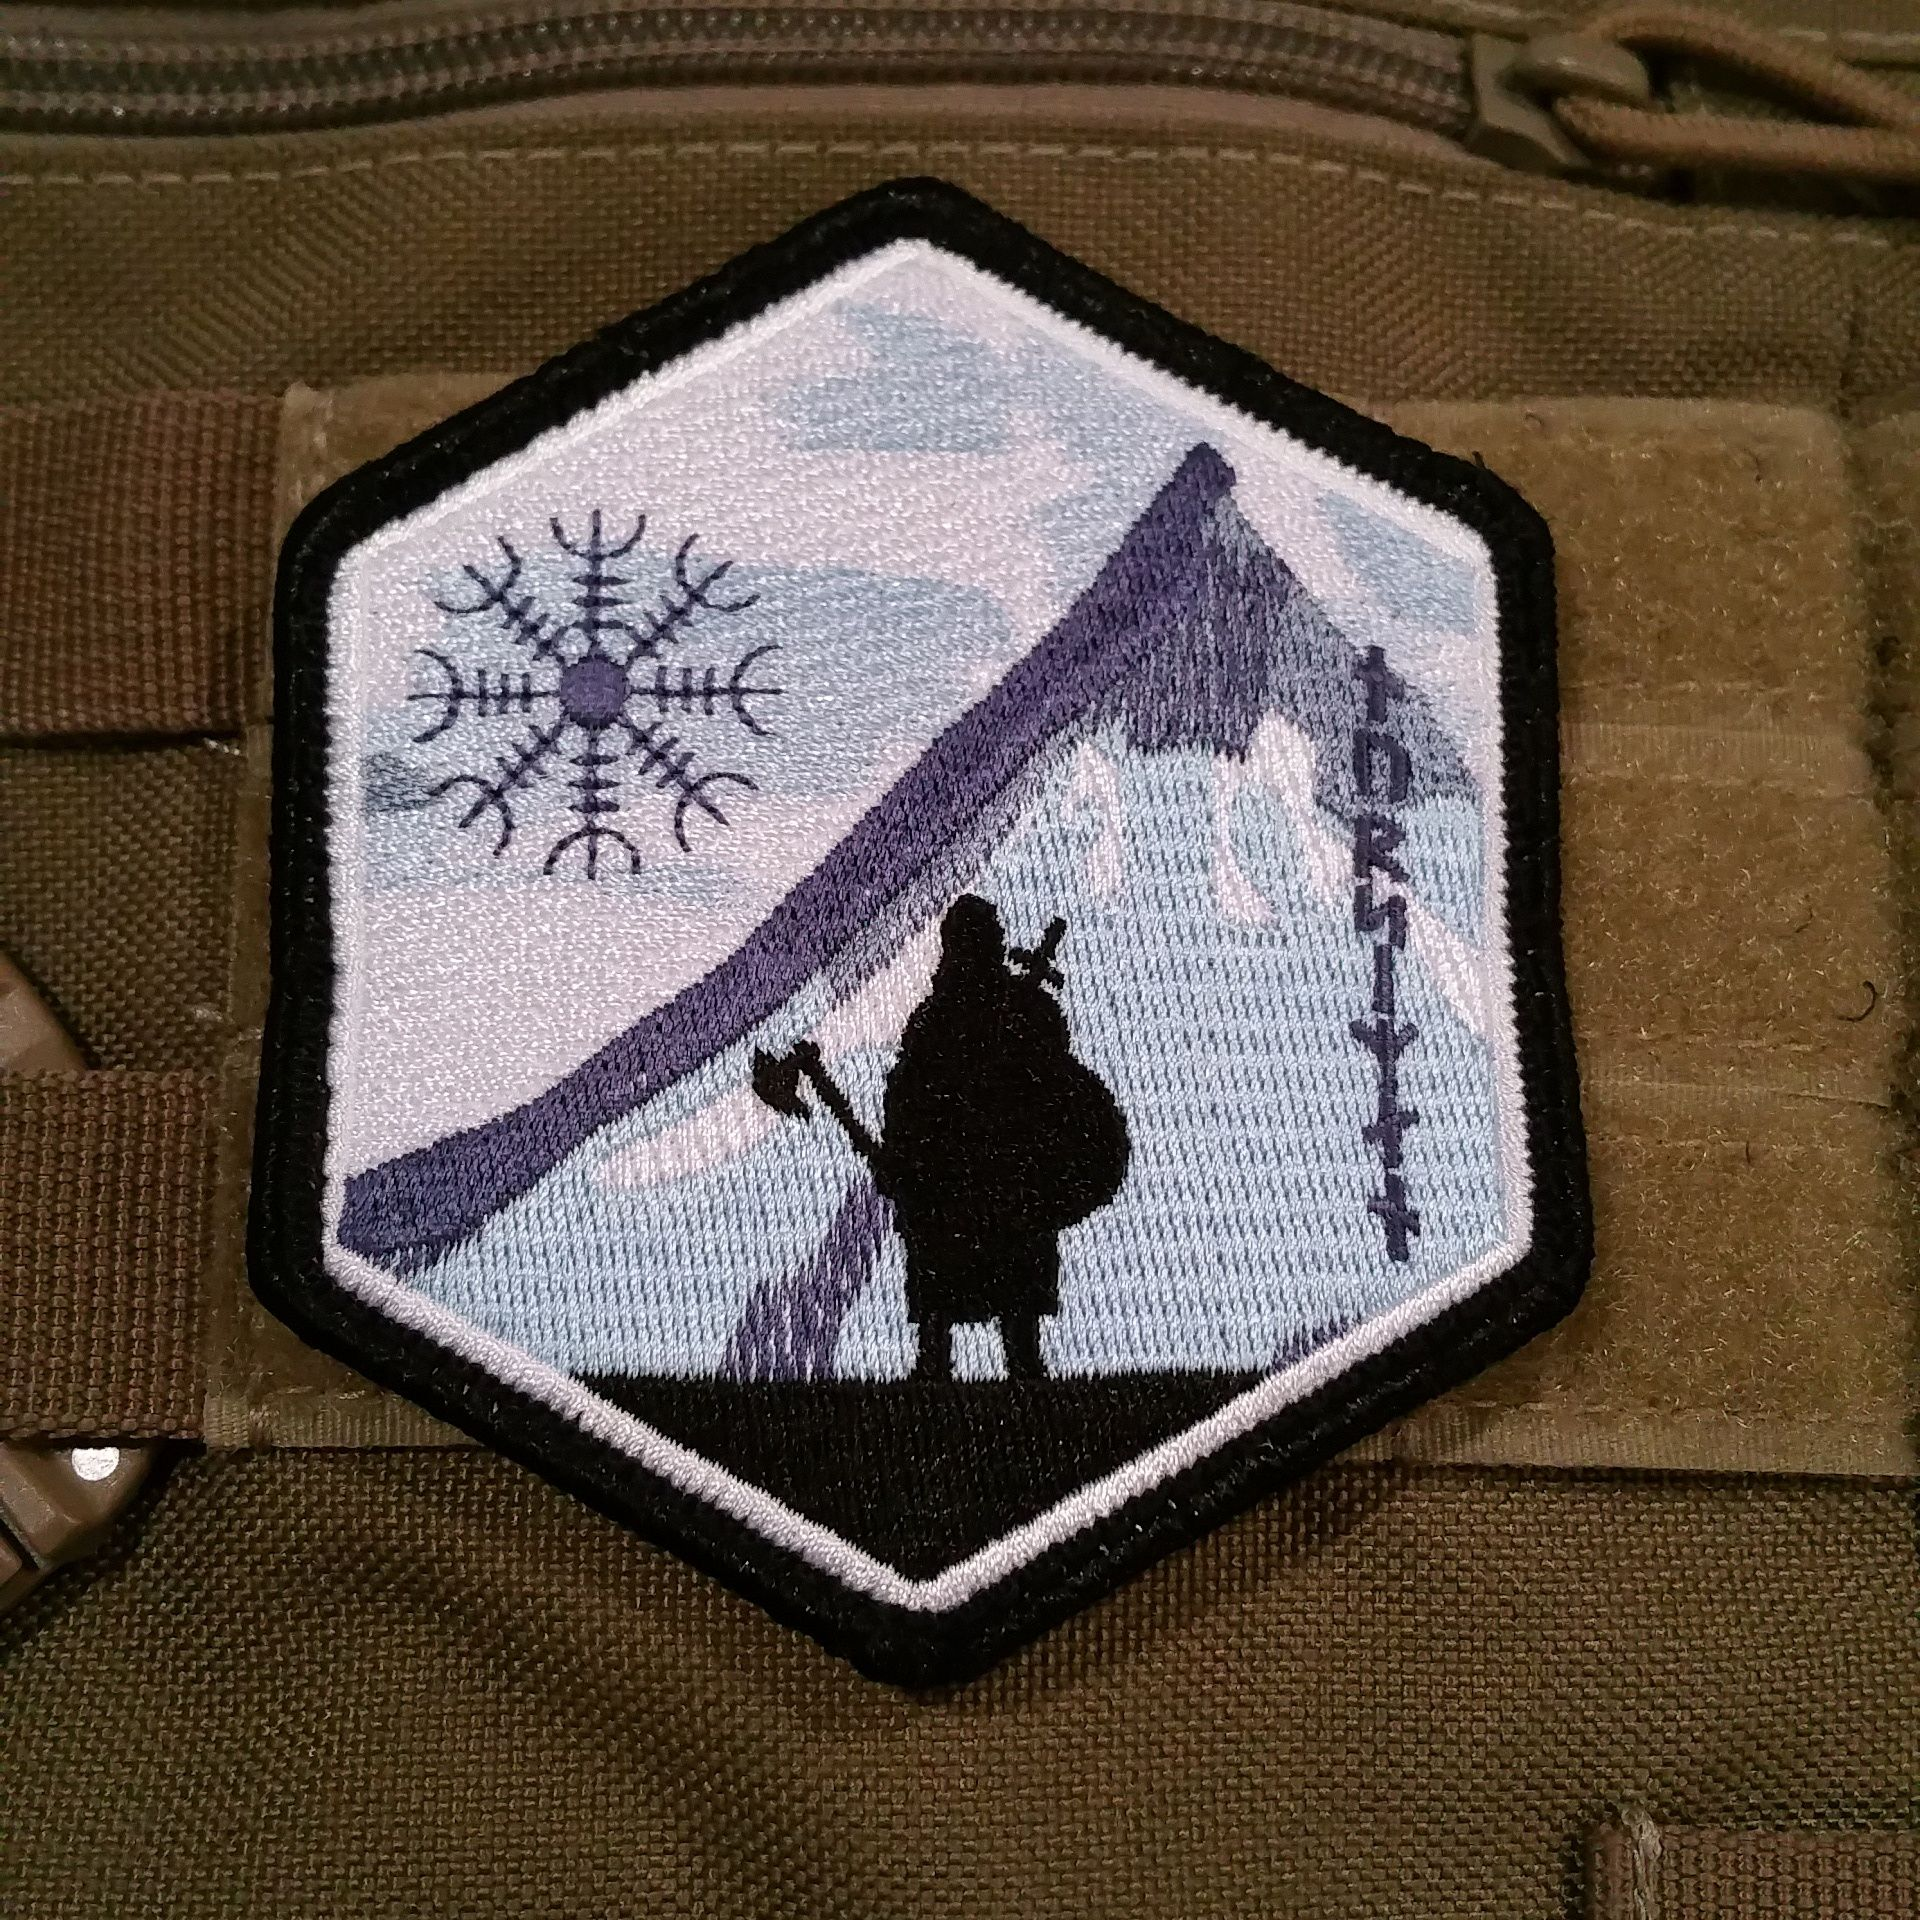 Norseman Morale Patch Version 1, 100% embroidered 4″ x 3″ hexagon shape, features our lone Viking Warrior against a snow covered mountain with the Helm of Awe in the sky. Only 100 made in this limited edition. Made in USA!! Free USPS First Class Shipping!!